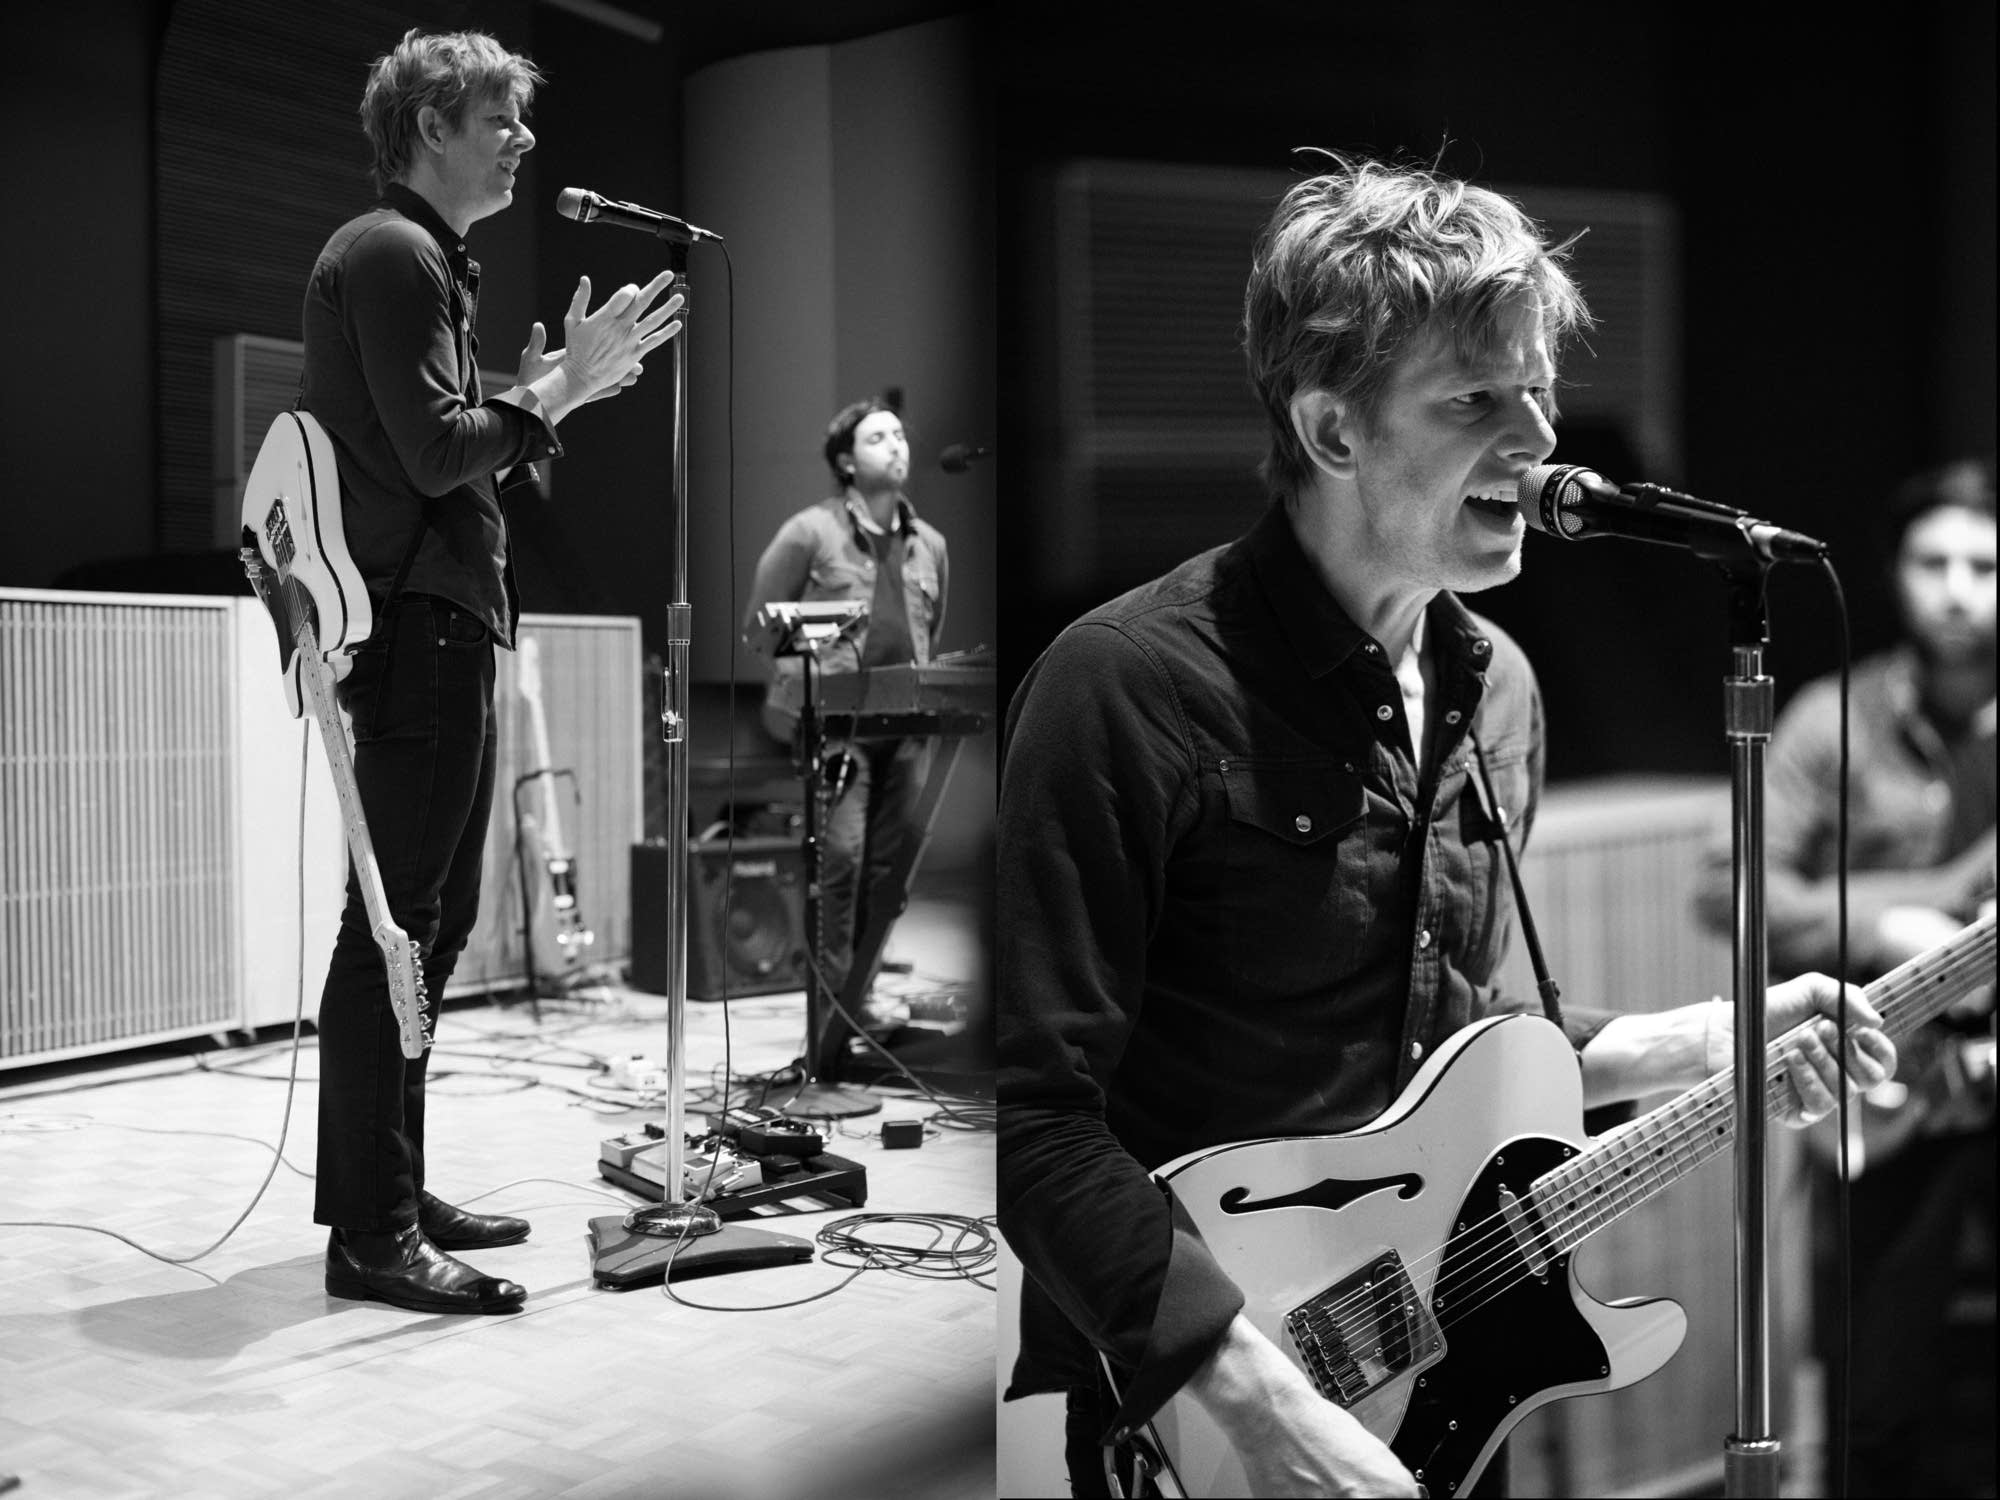 Spoon in The Current studio